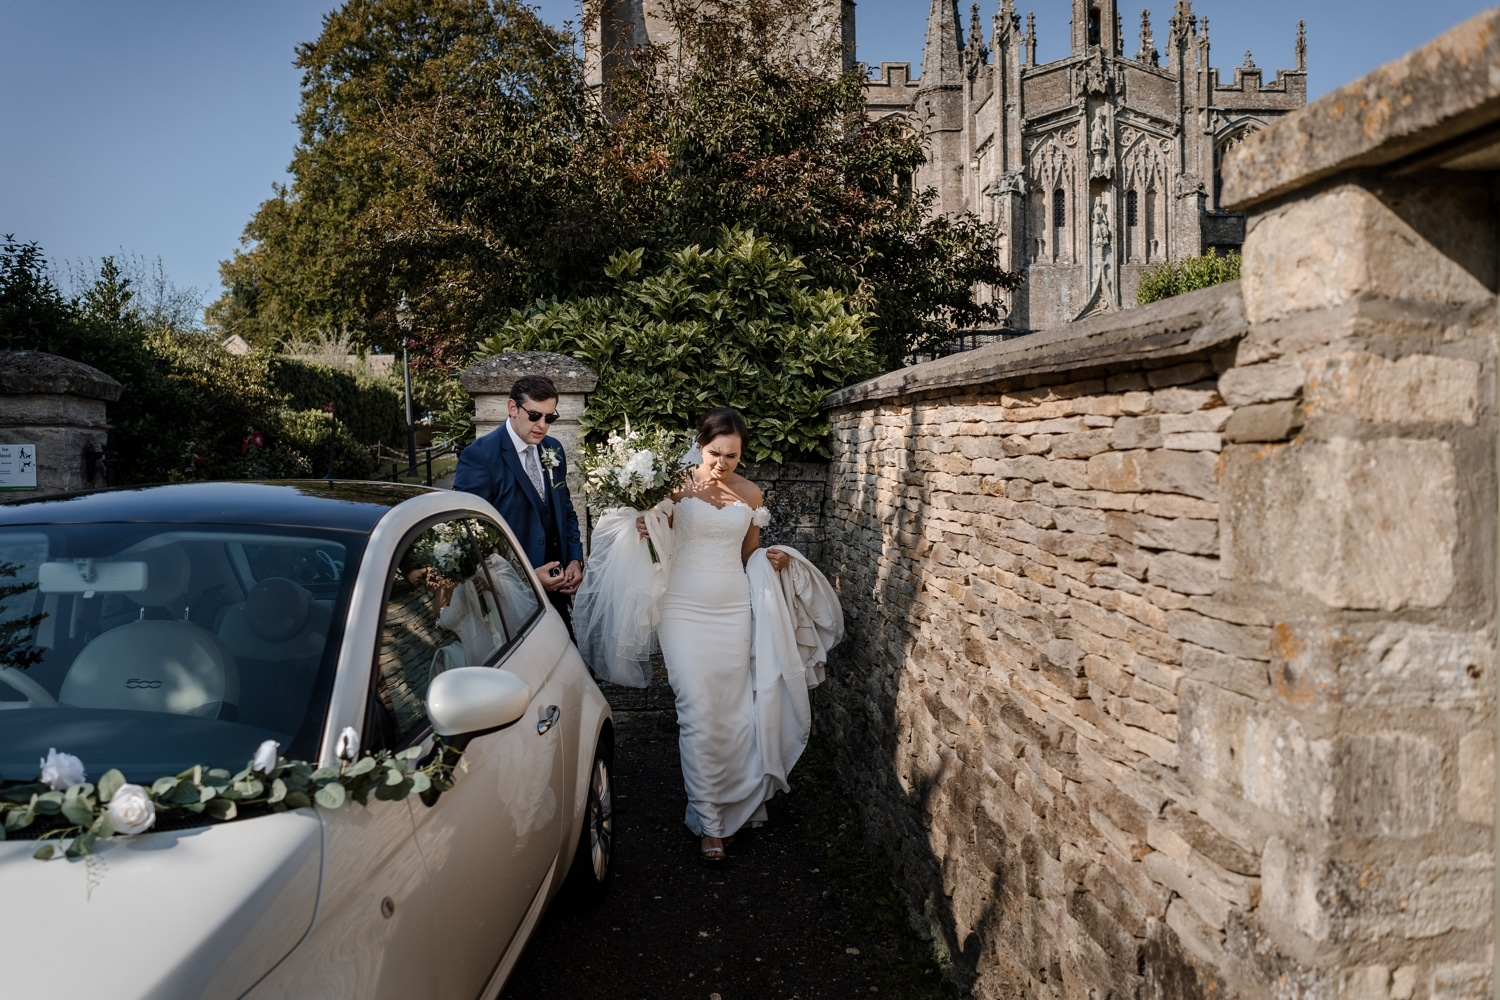 Northleach church wedding